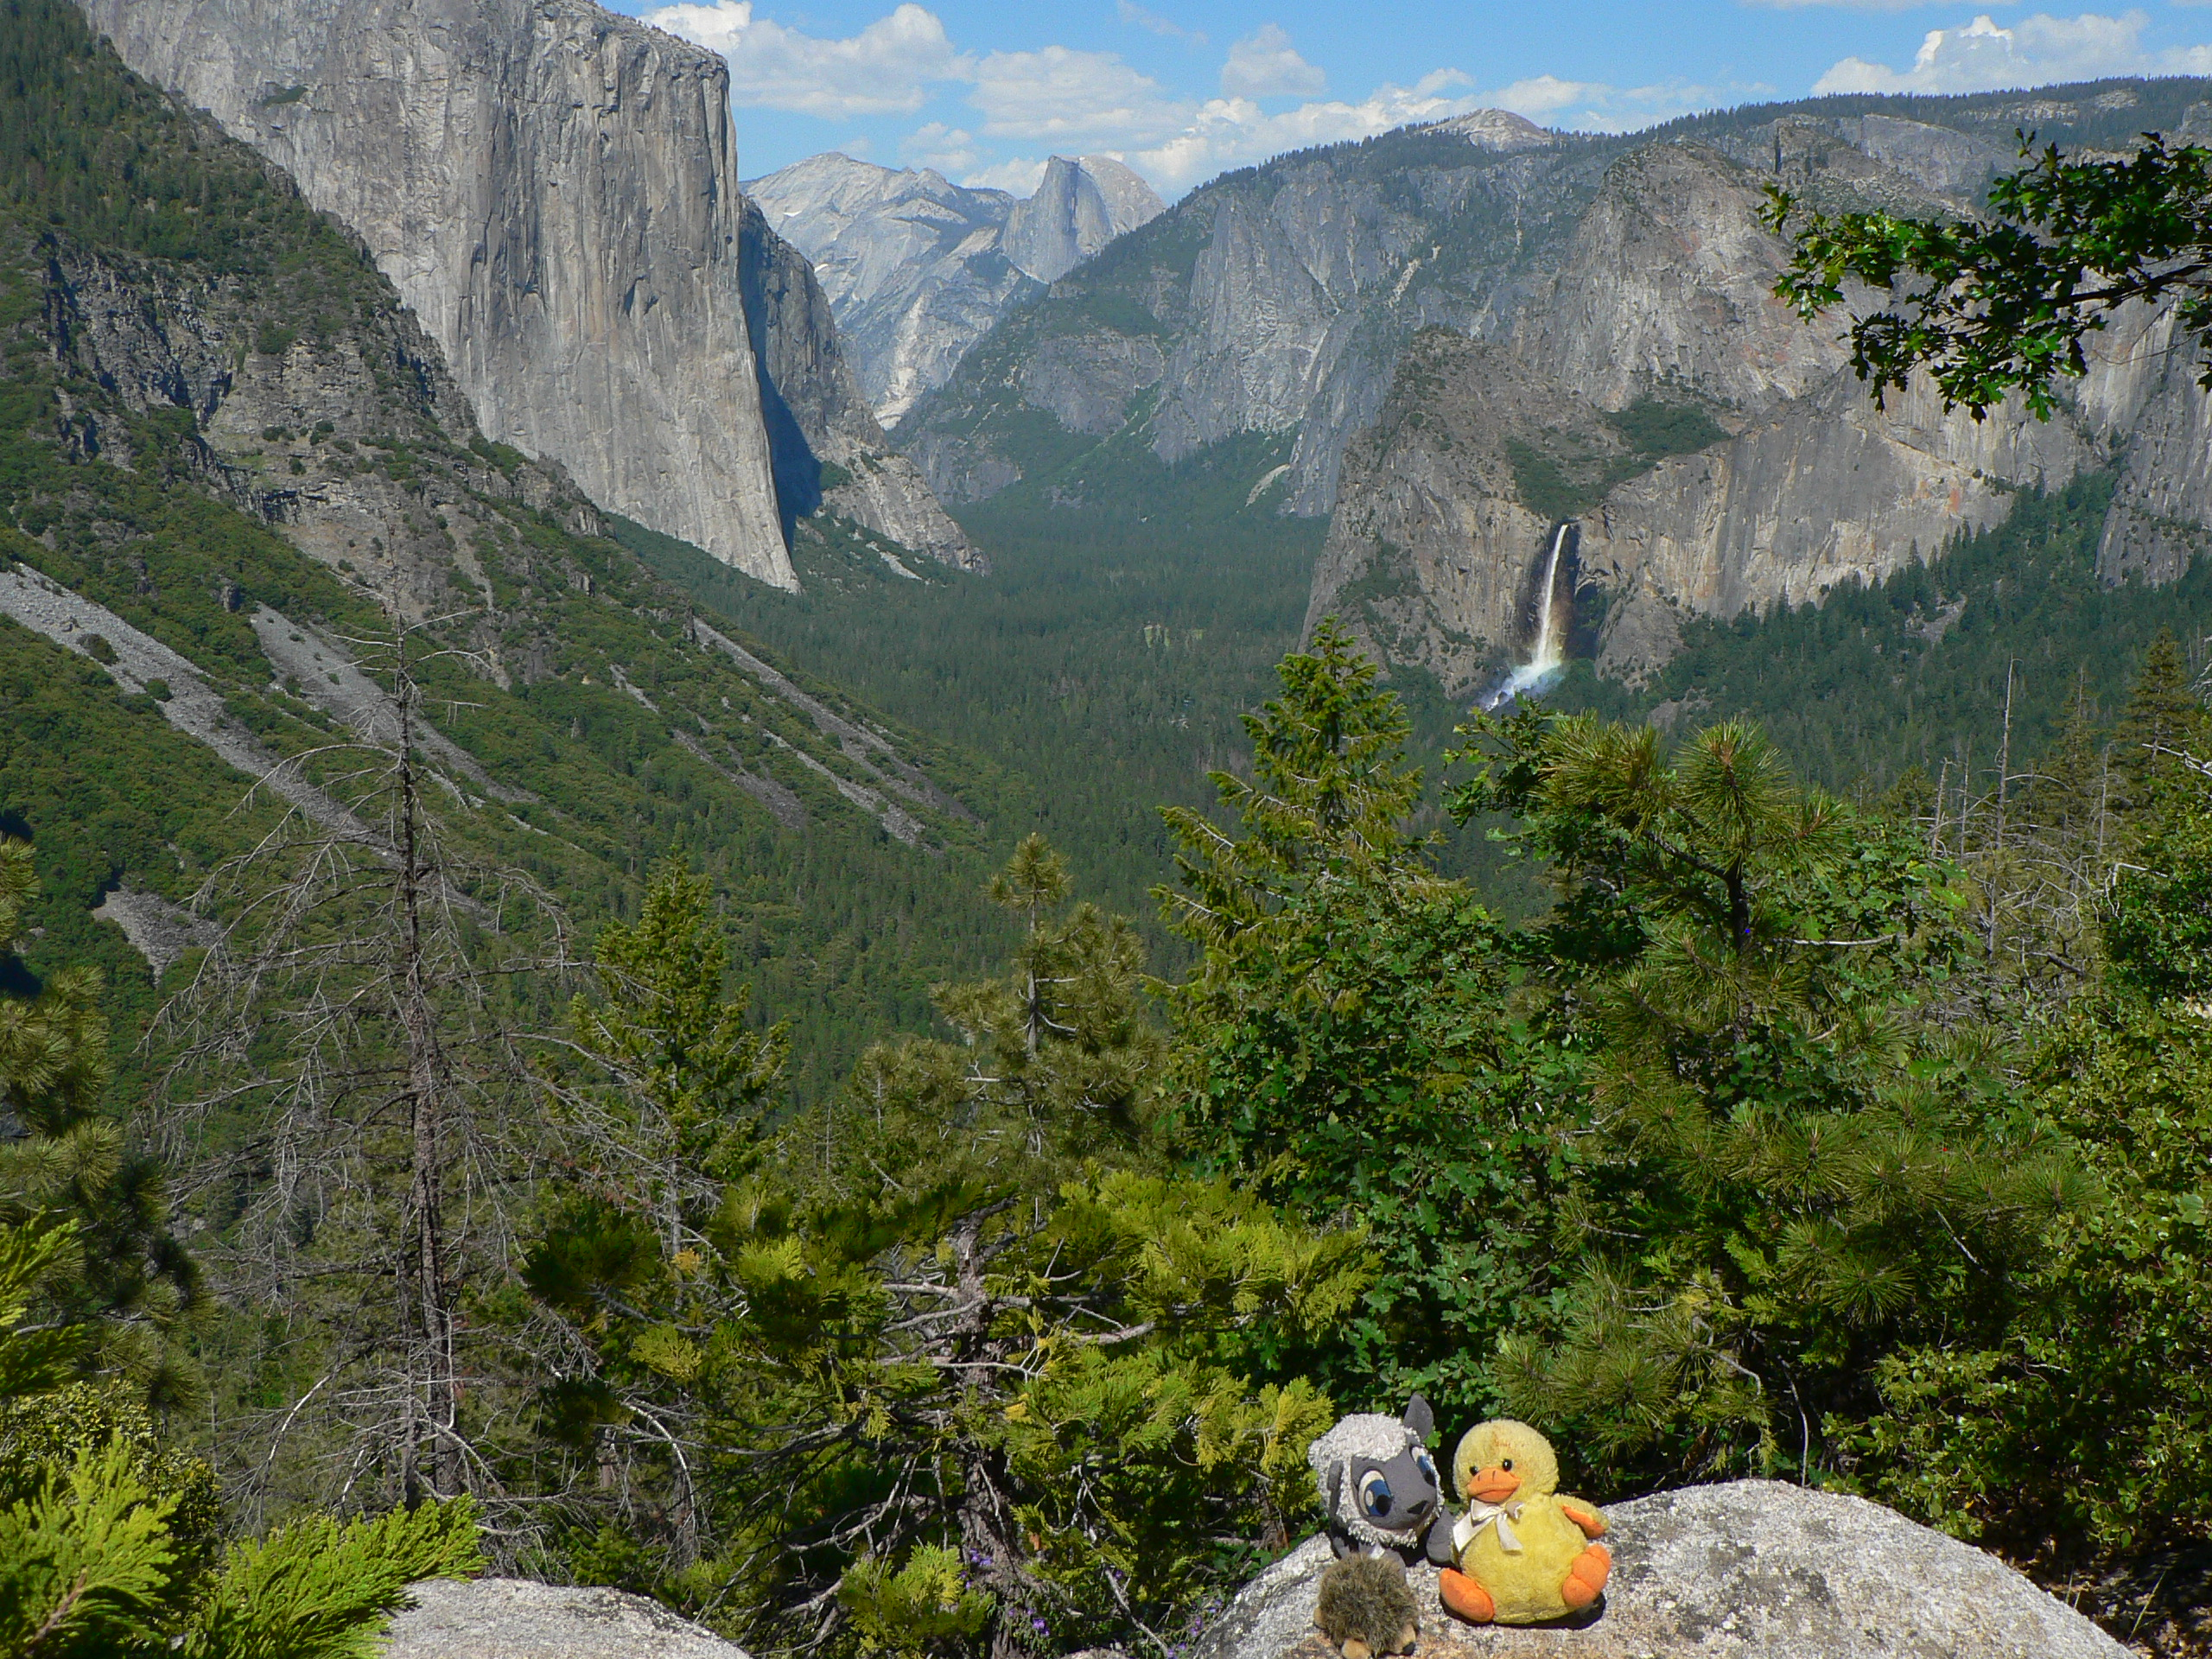 Day Hiking Inspiration Point Yosemite Our Second Trip